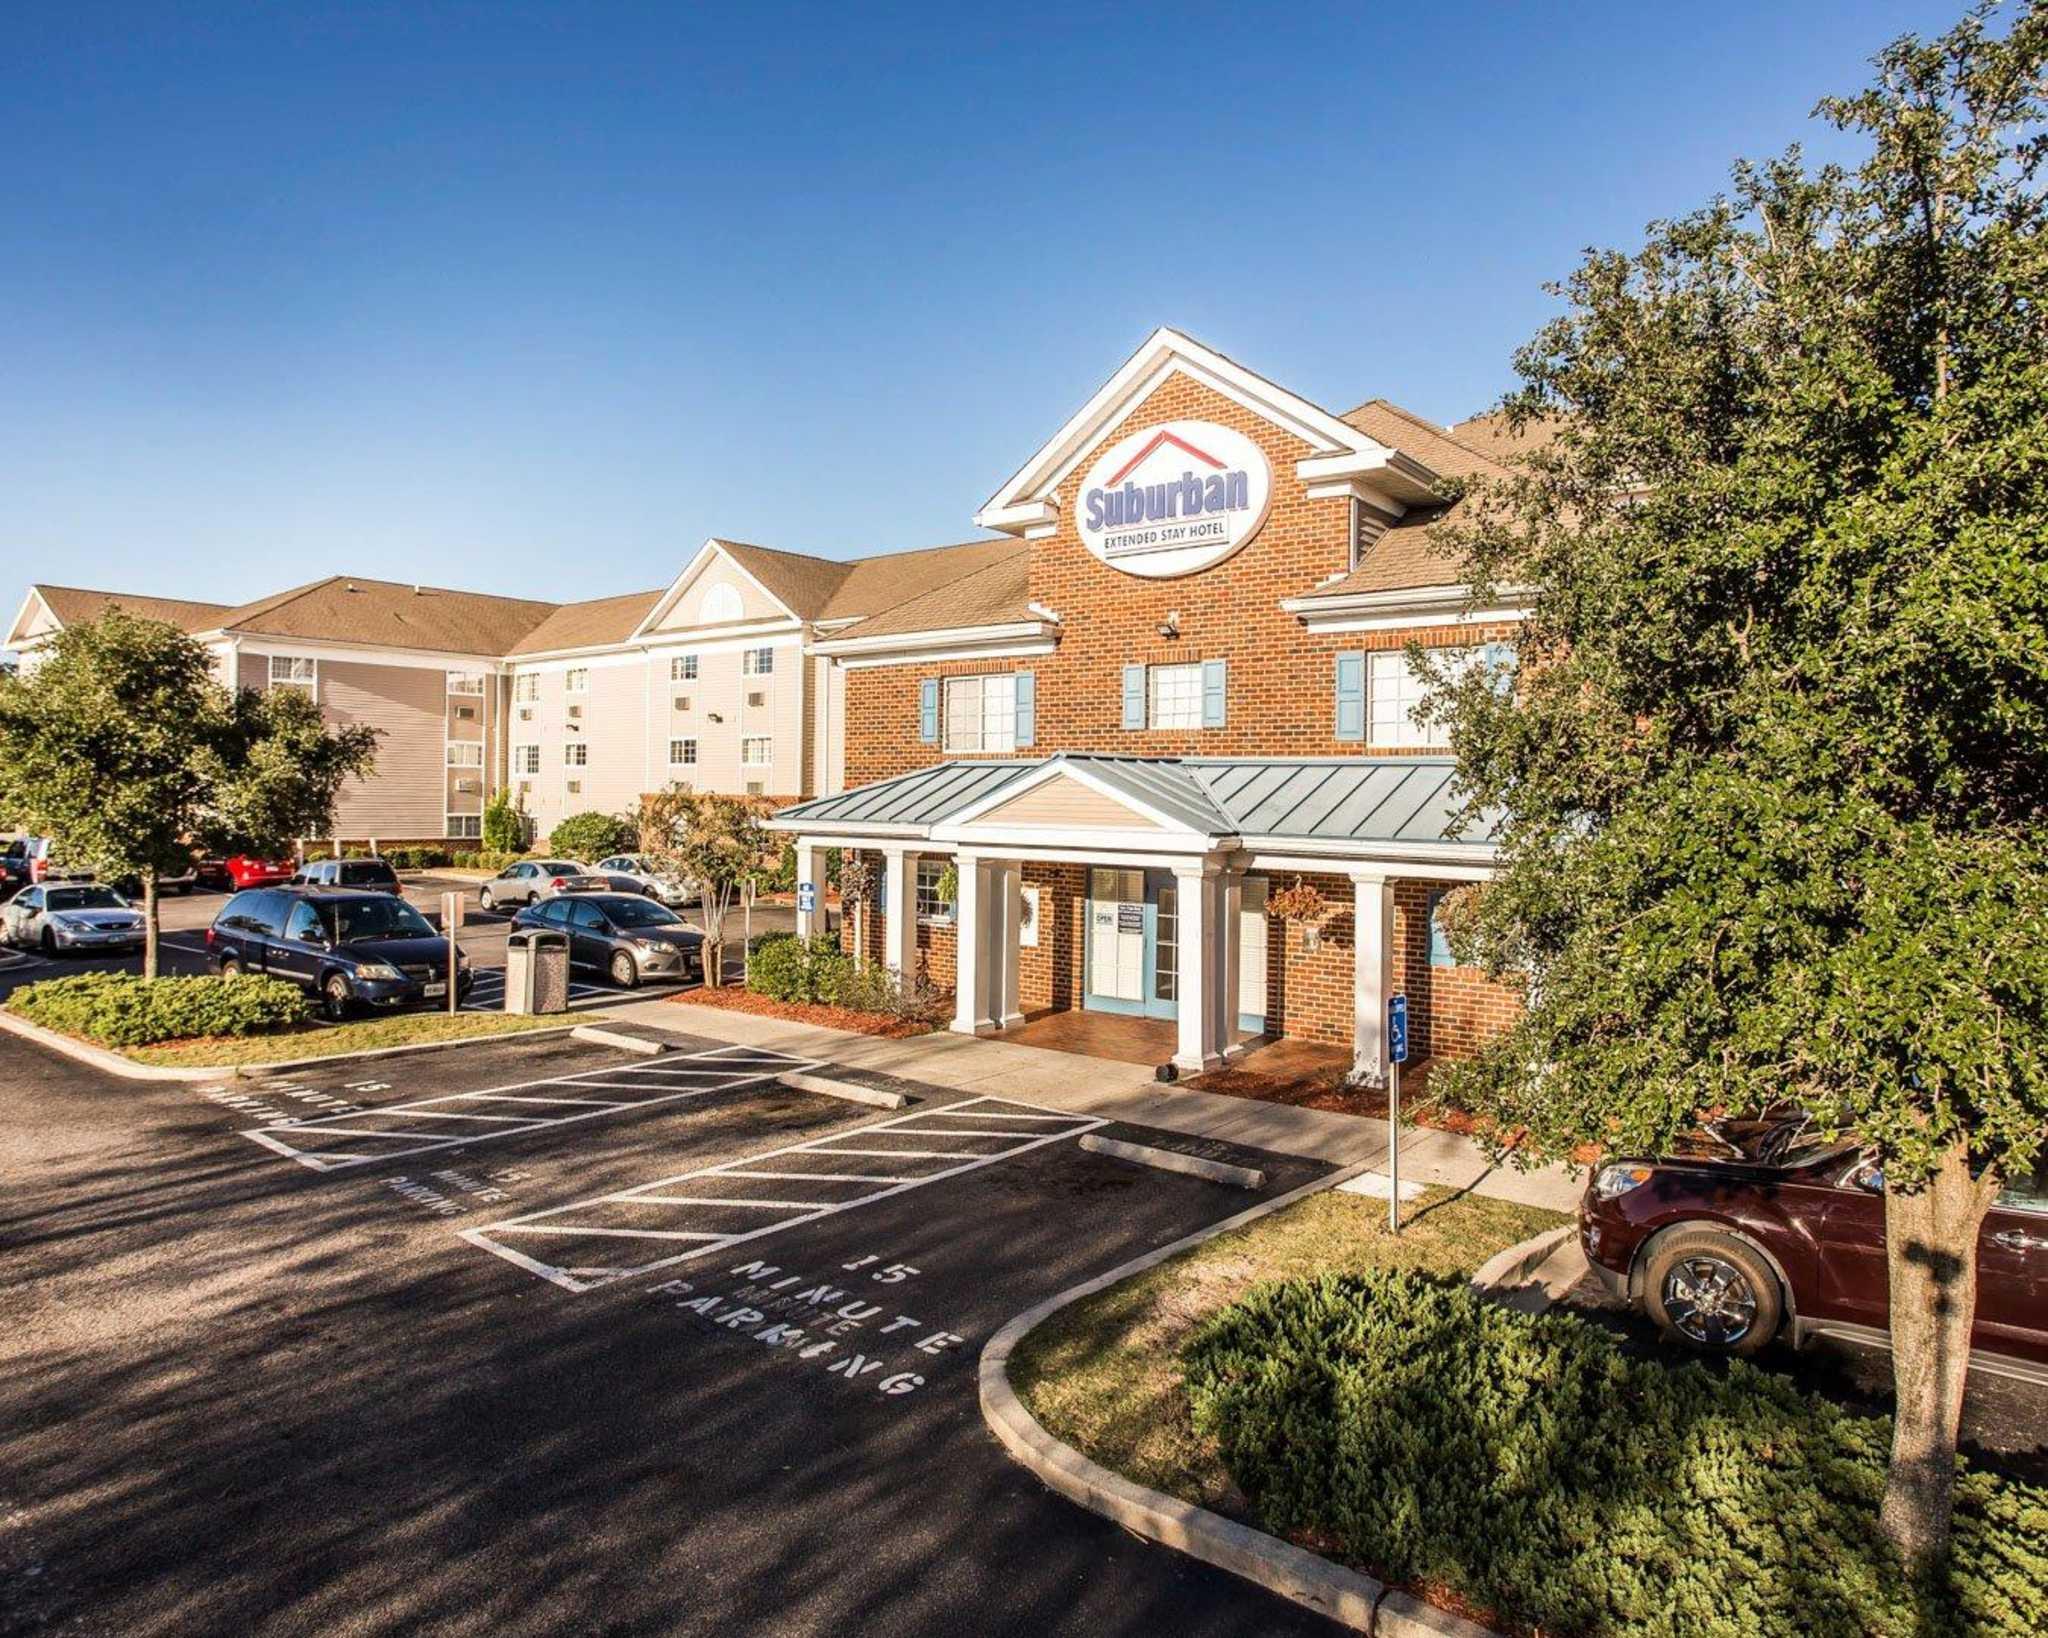 Extended Stay Near Myrtle Beach Sc